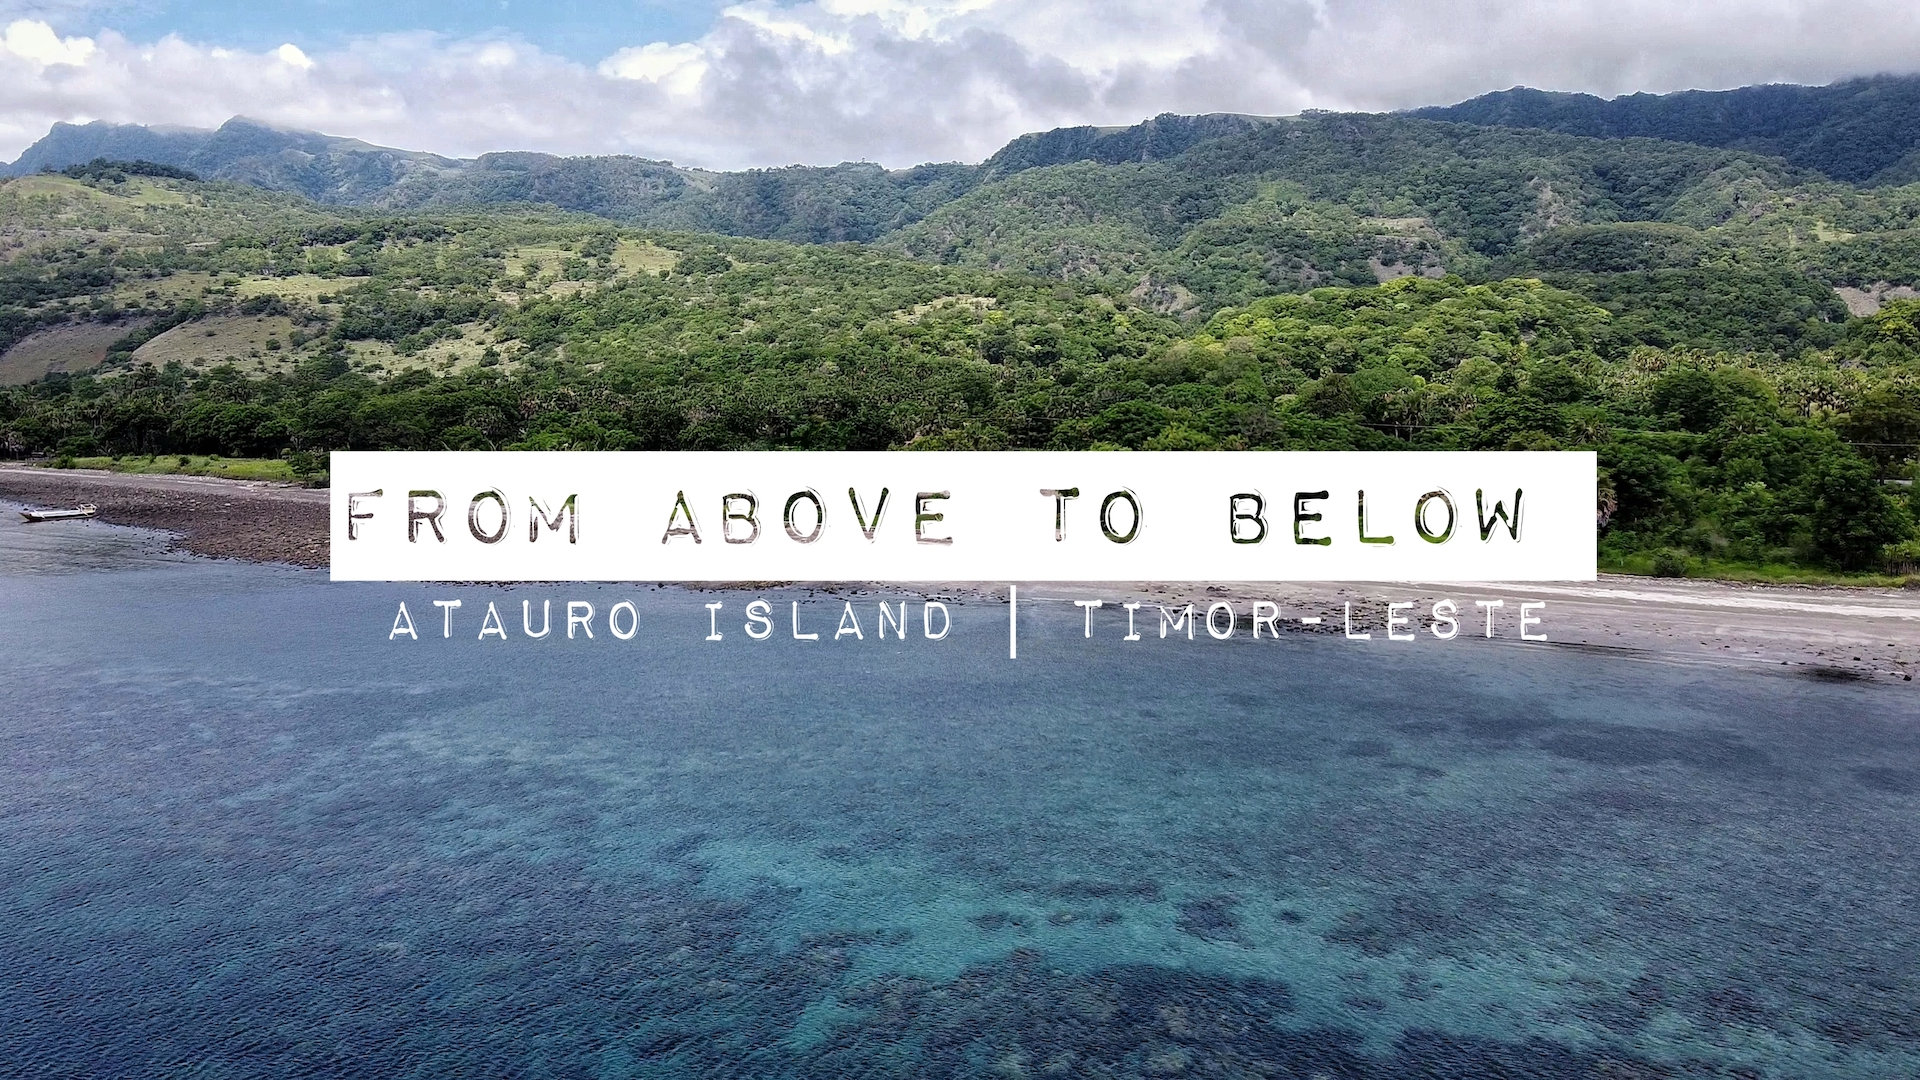 From Above To Below | Atauro Island, Timor-Leste